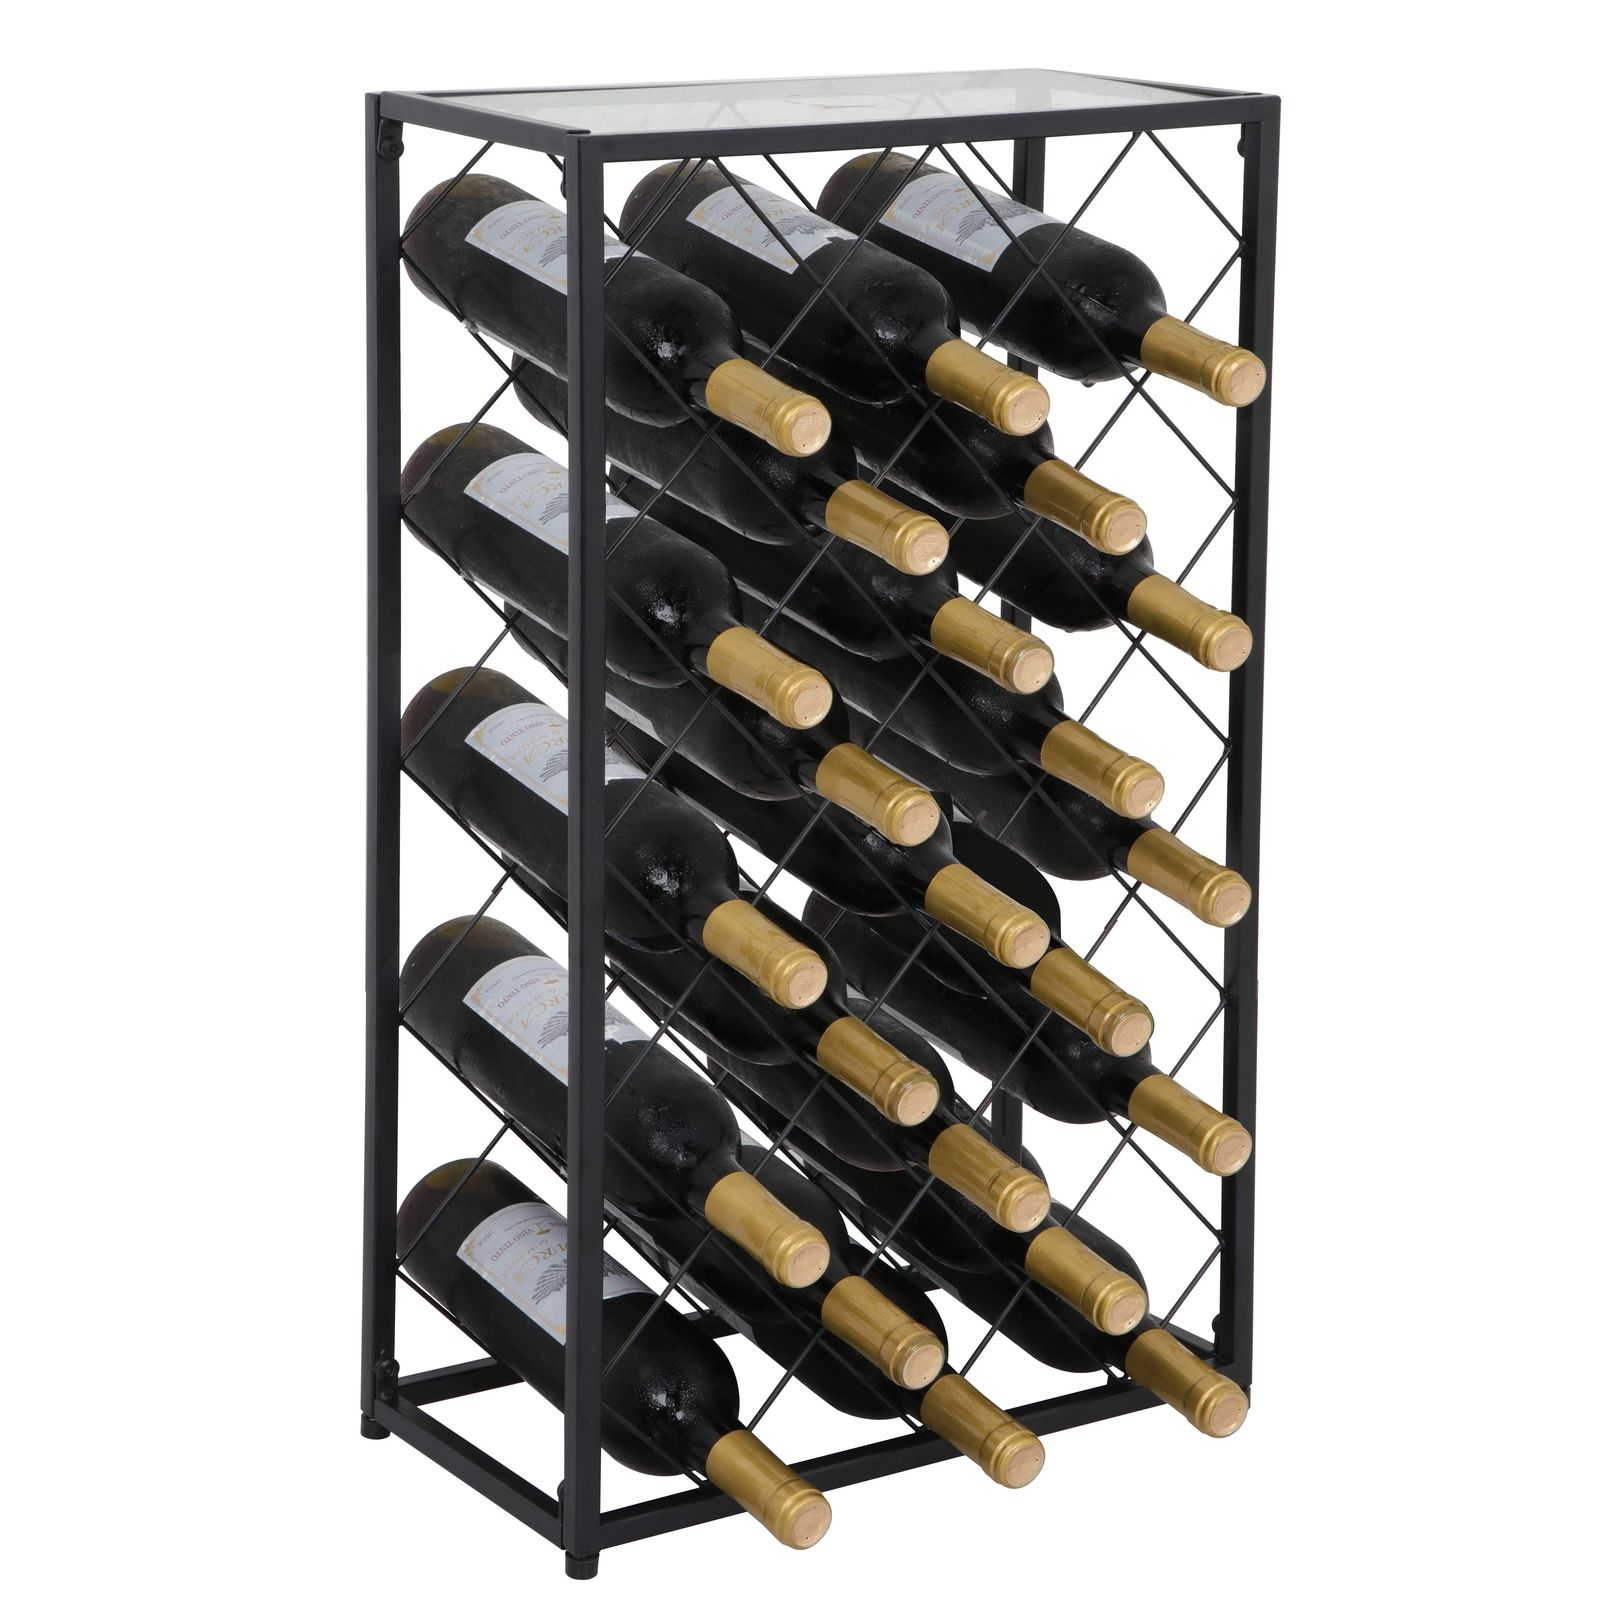 Zeny 23 Bottle Black Steel Wine Rack Table with Glass Top Free Standing Floor Wine Organizer Display Rack Wine Storage Shelves